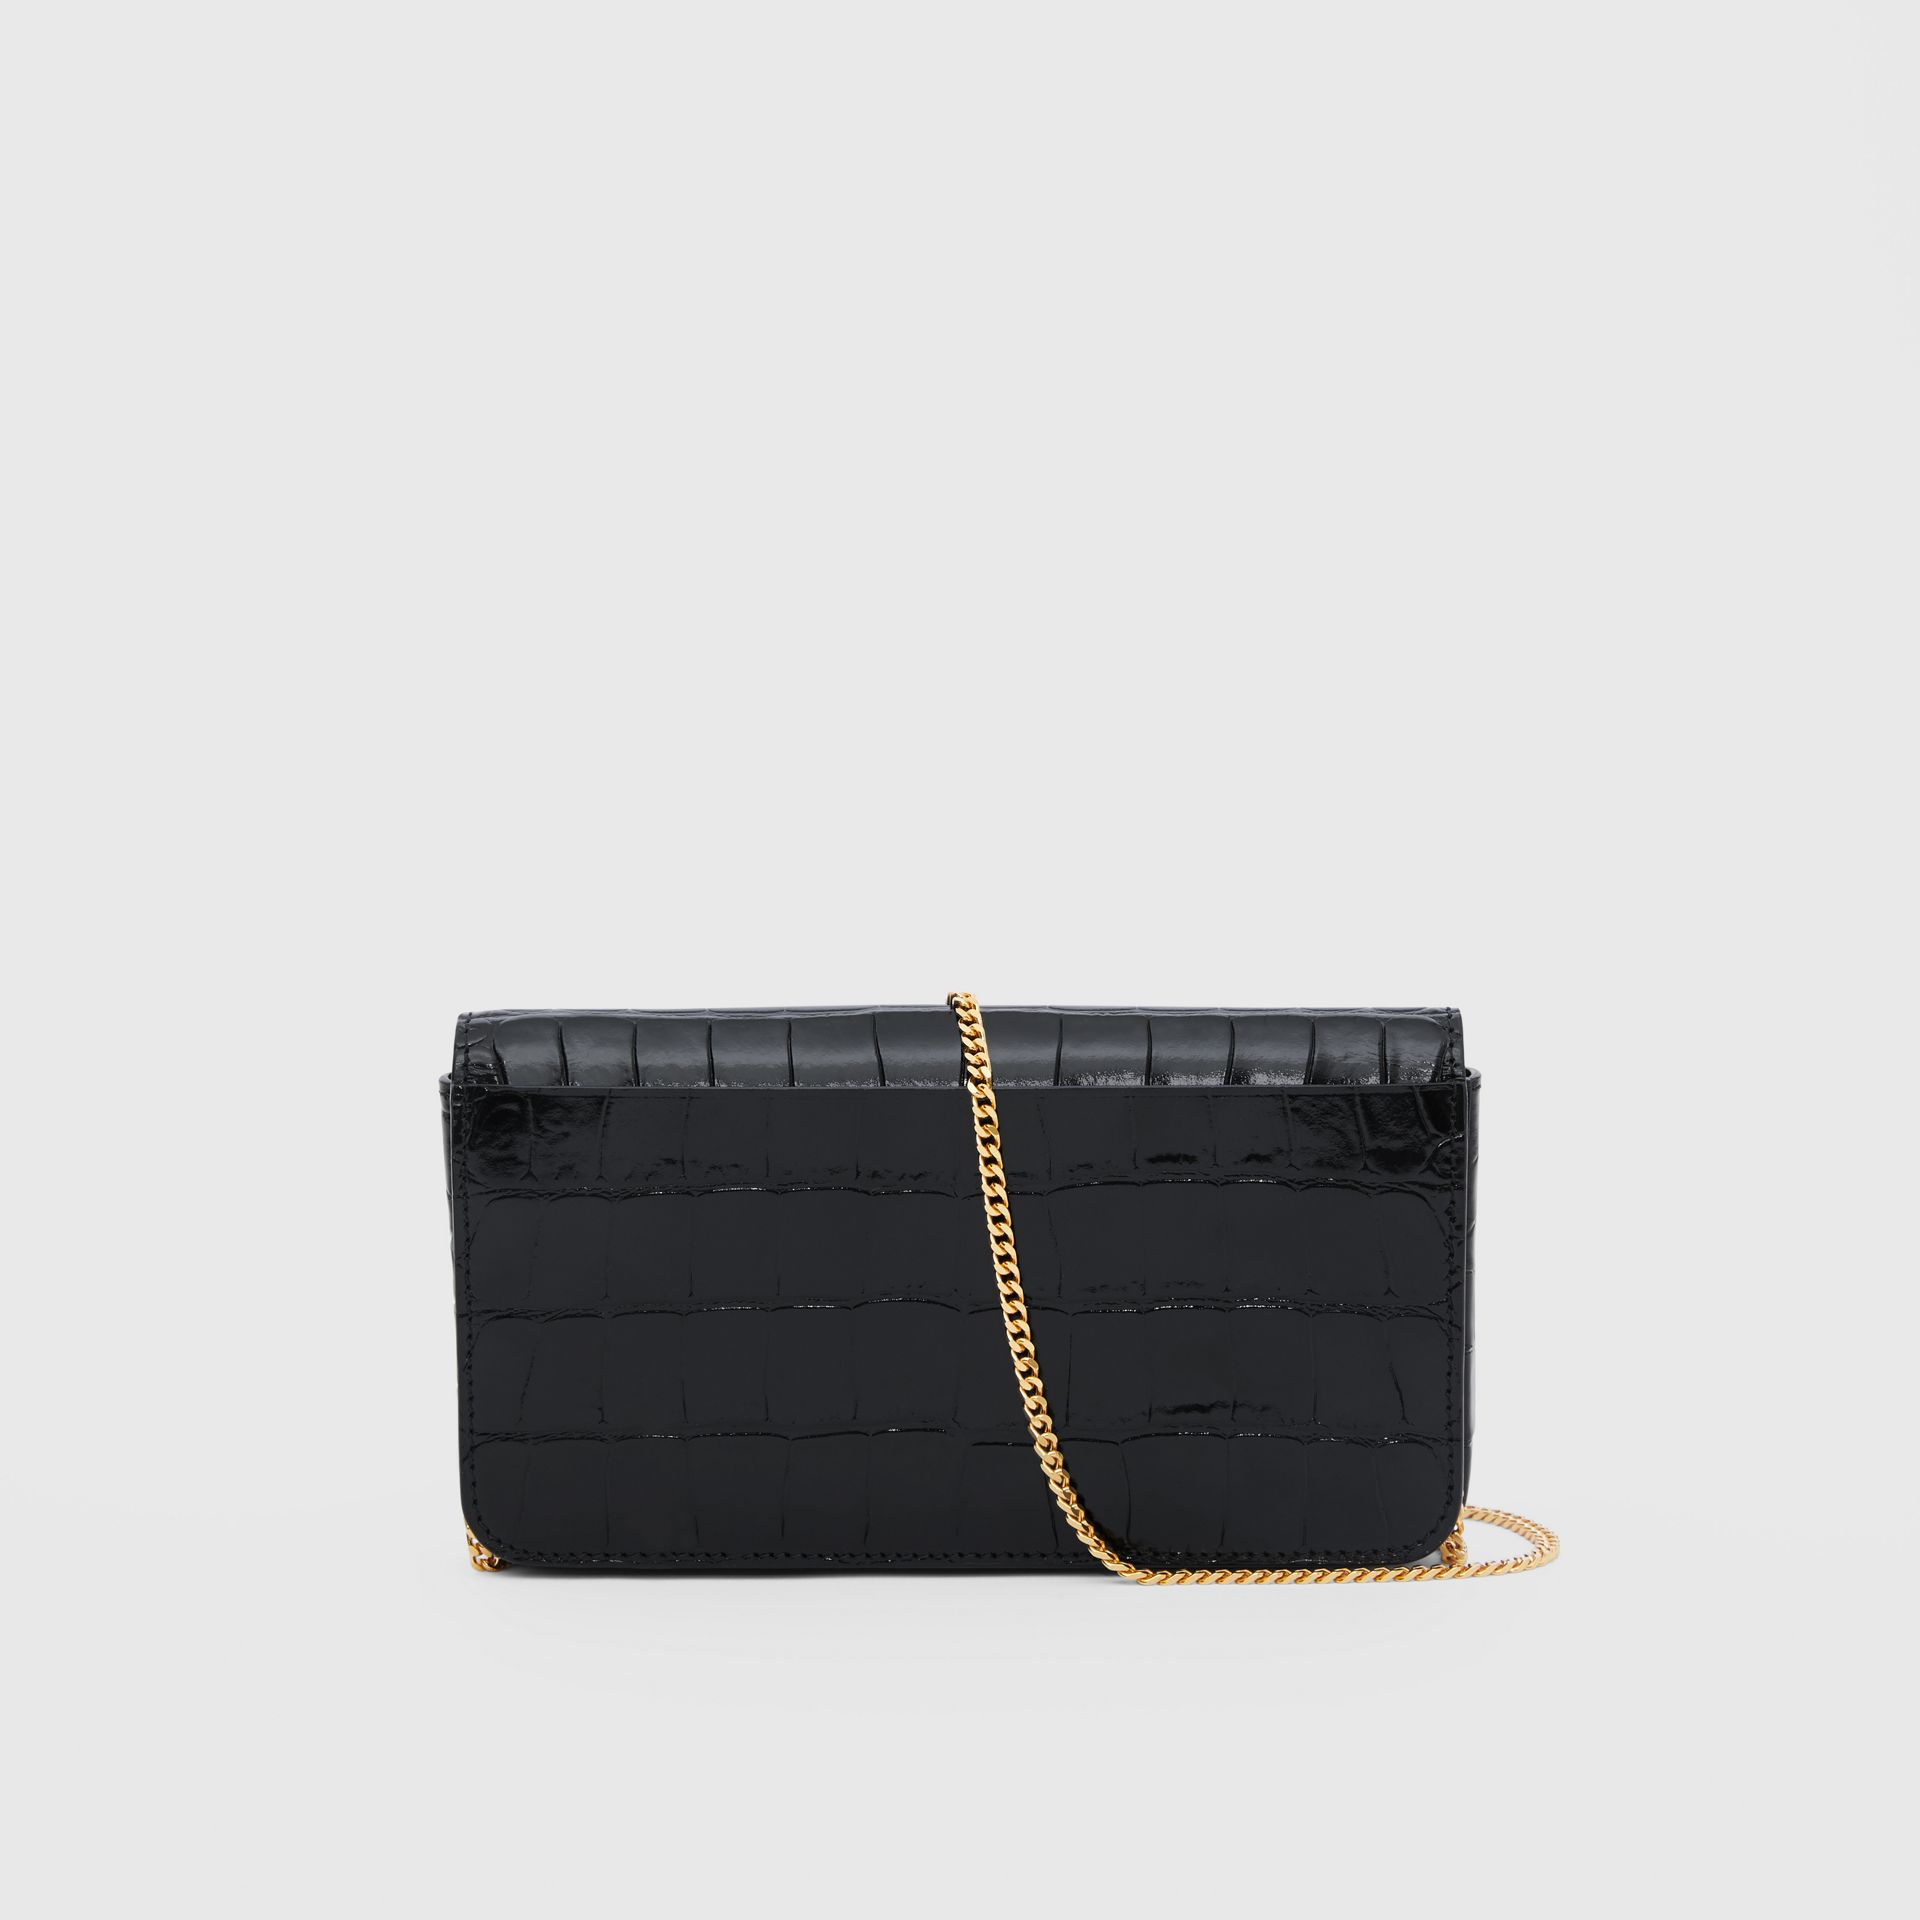 Embossed Leather Wallet with Detachable Chain Strap in Black - Women | Burberry United States - gallery image 7